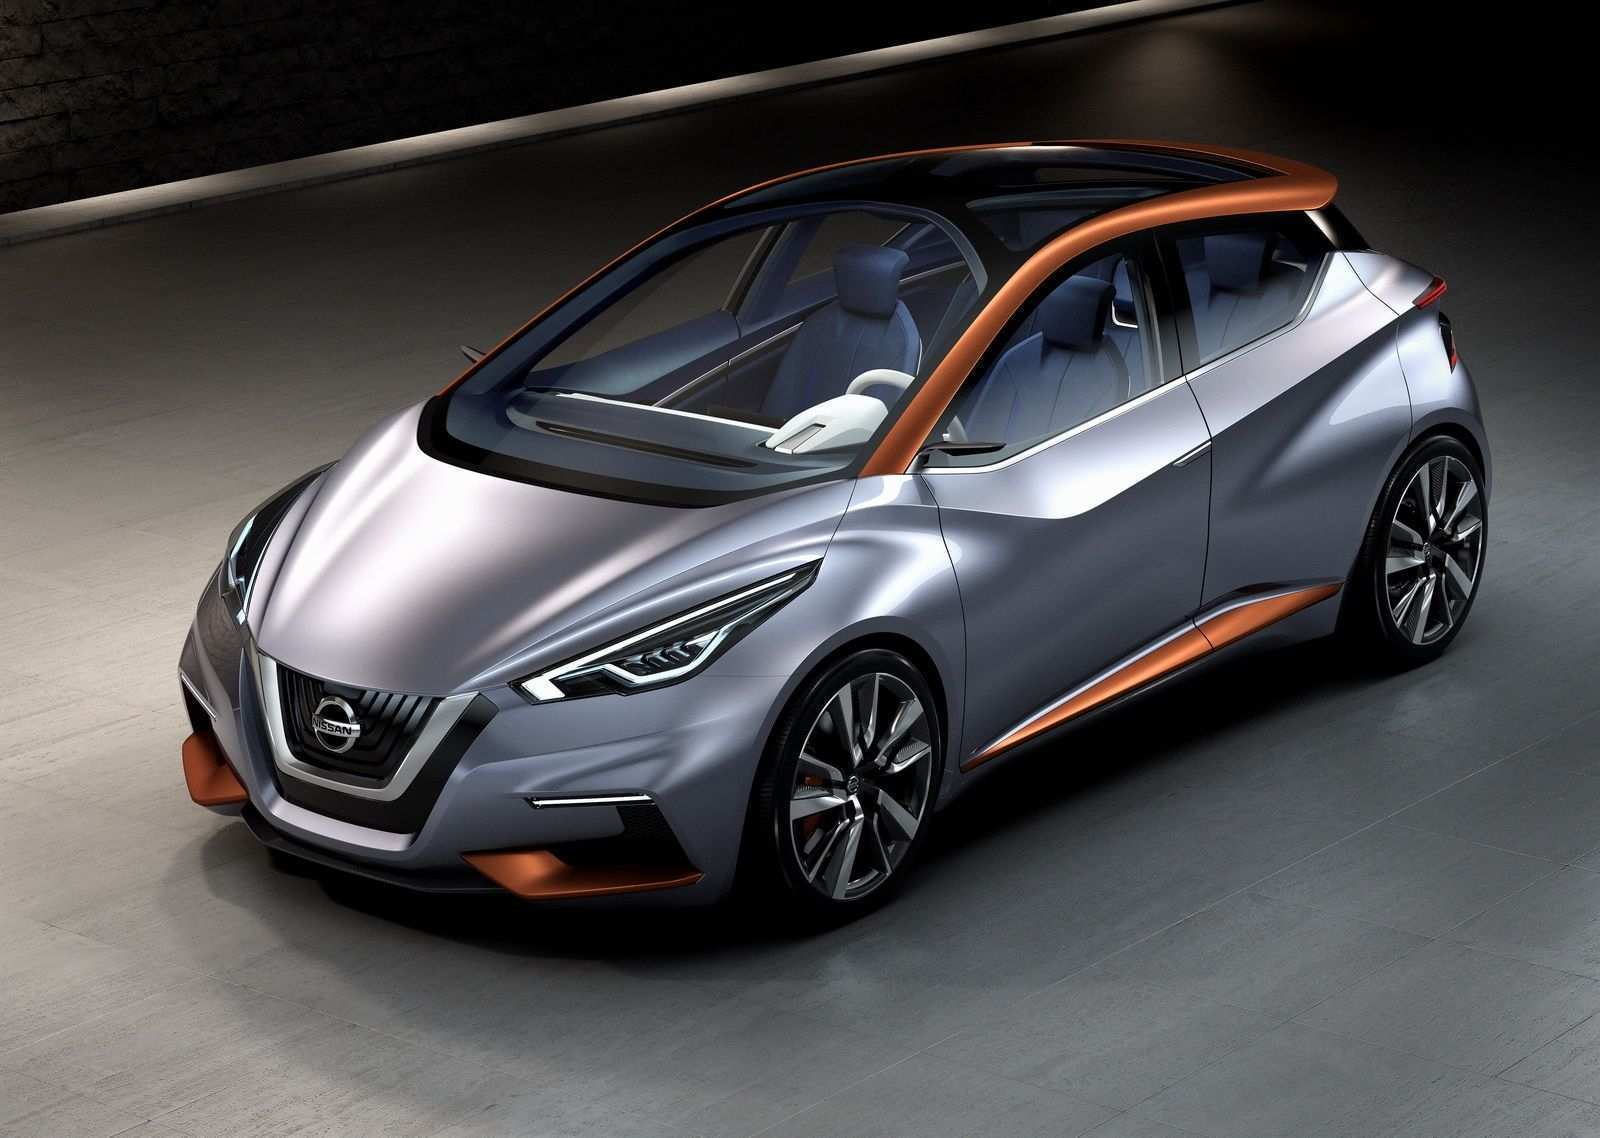 64 Best Review Nissan 2020 Micra First Drive for Nissan 2020 Micra